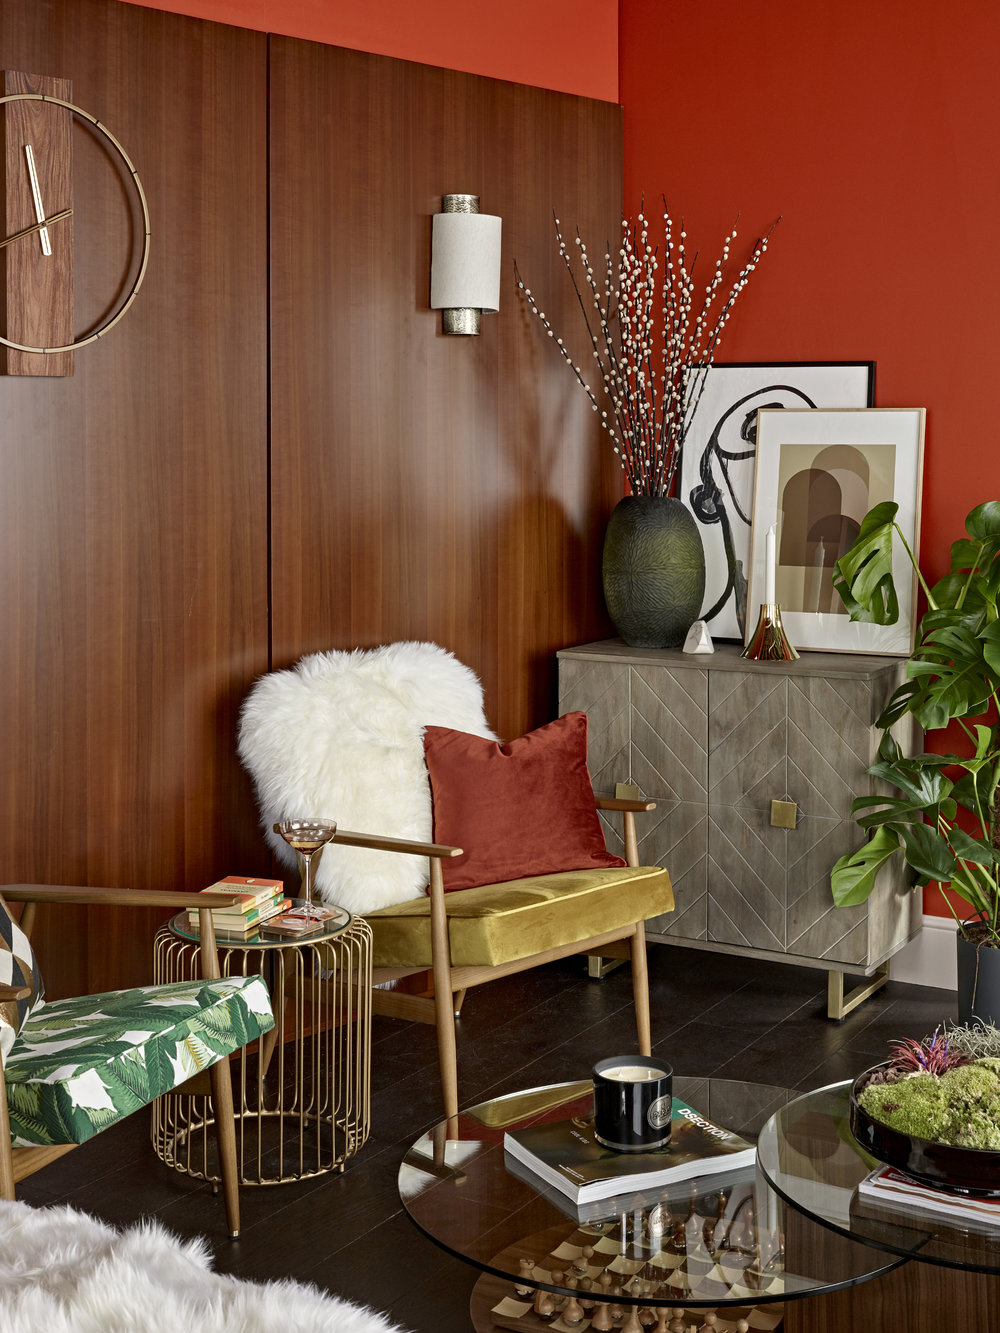 Designed by Woulfe, Mad Men, DreamHouzz, Clare Gaskin Interiors, Nick Smith Photography